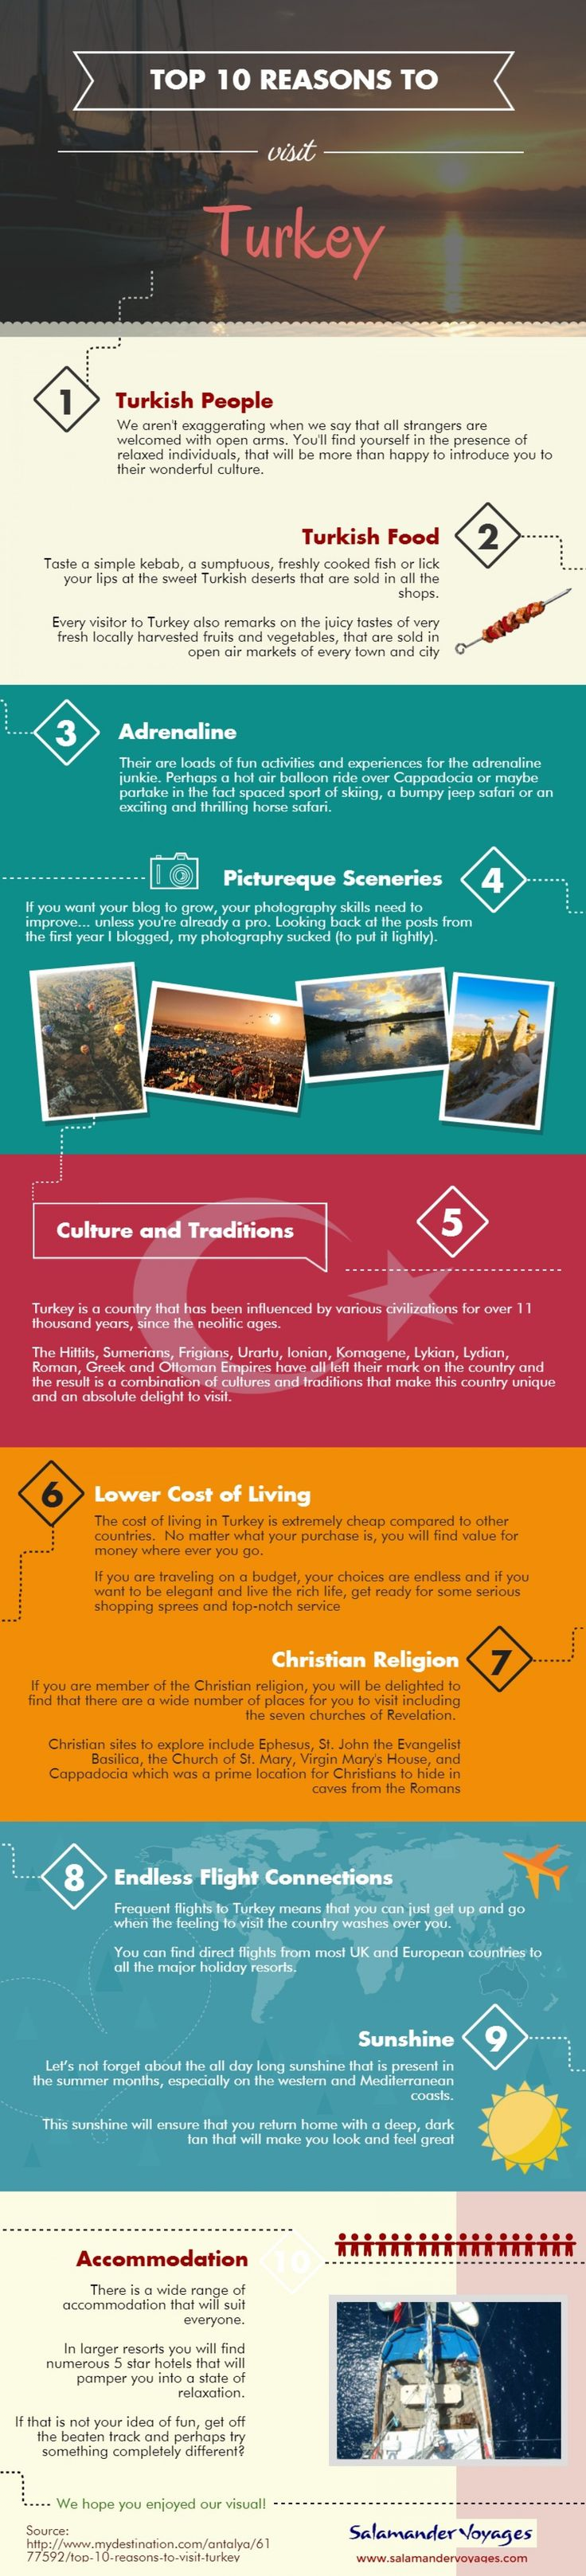 Top 10 Reasons To Visit Turkey Infographic